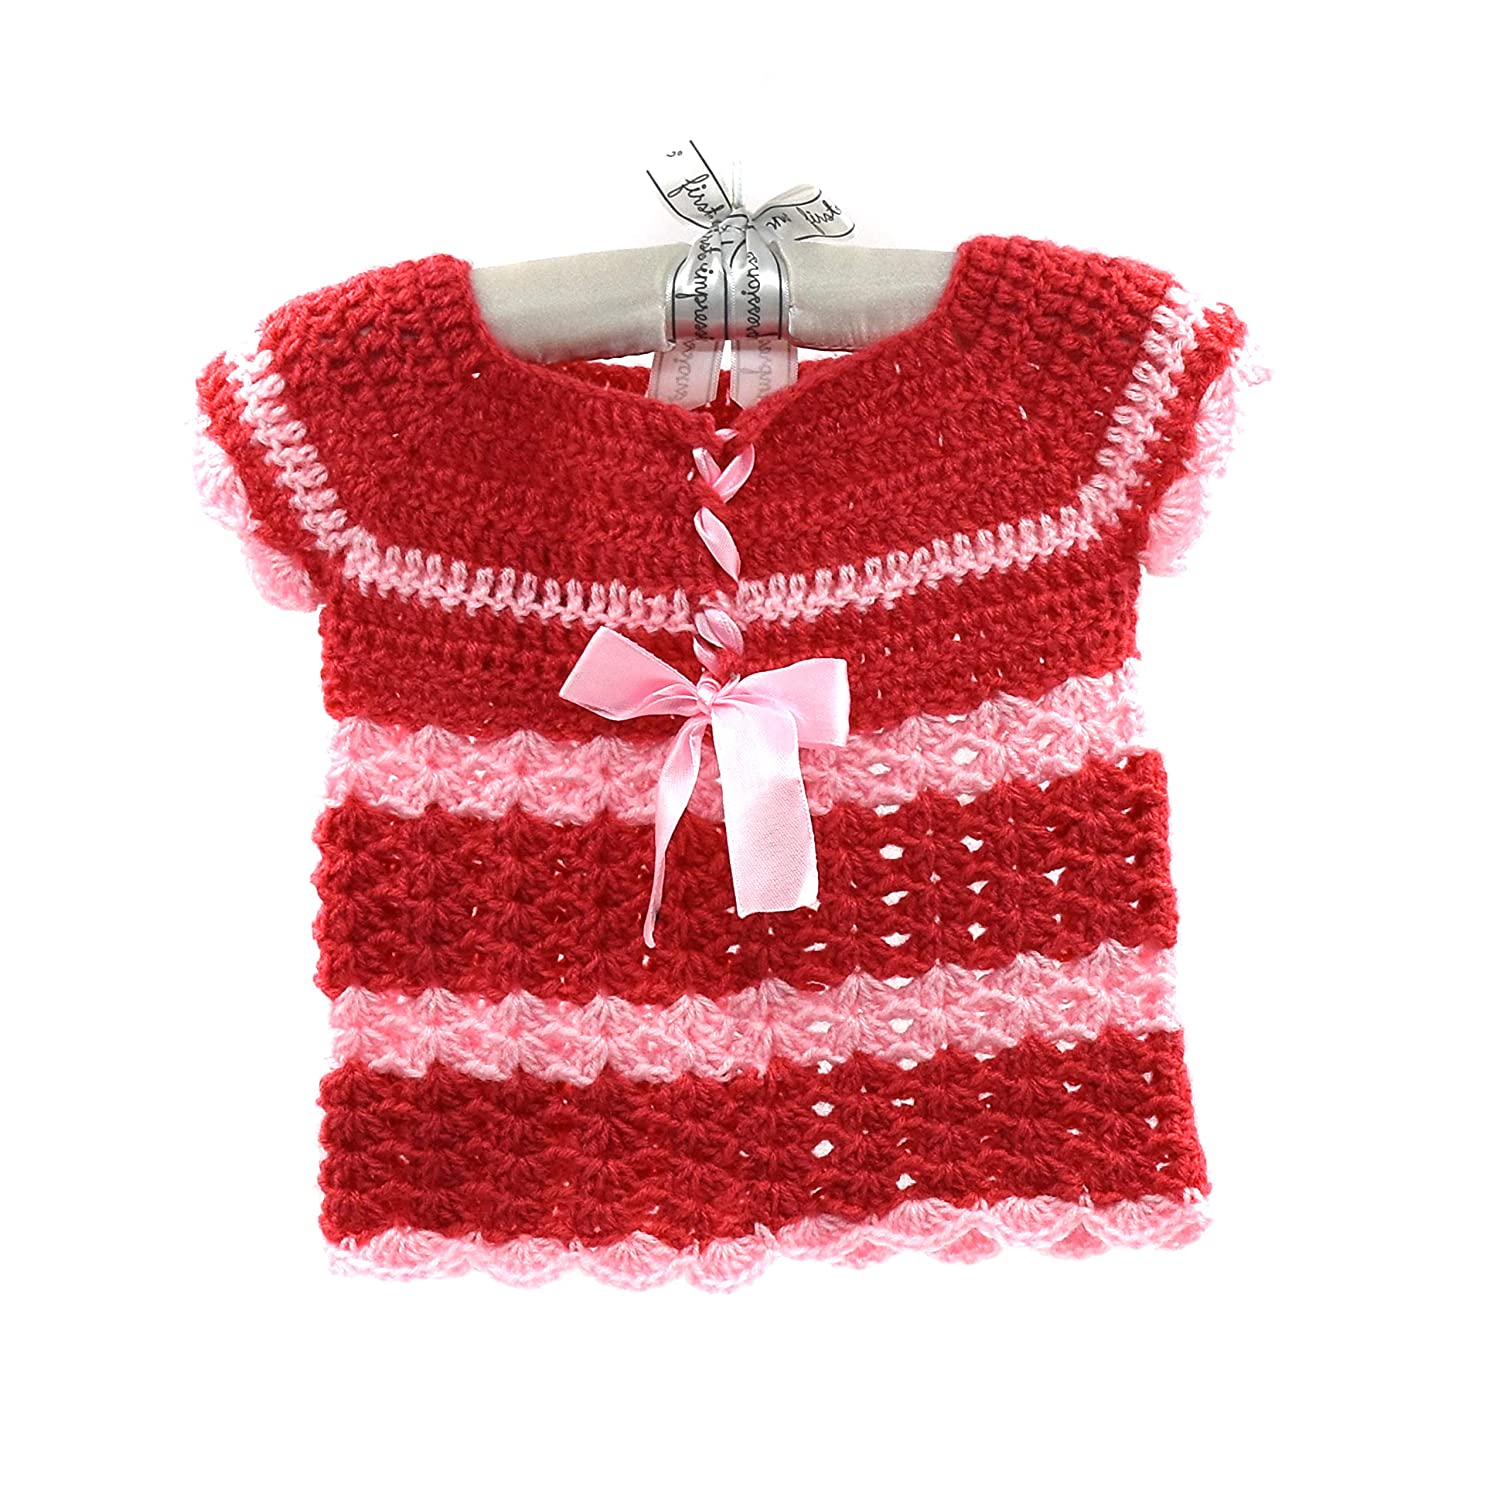 Magic Needles Handmade Knit Baby Girls Infant Newborn Winter Woolen Full Sleeves Sleeveless Sweater Pullover Cardigan